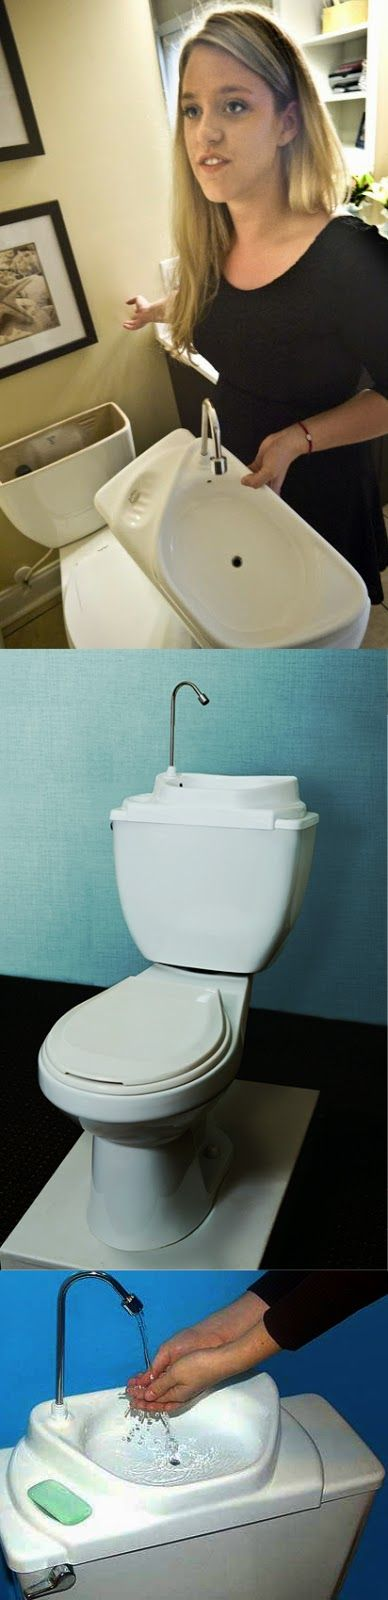 [Genius] Recycle Sink Water For Toilet Flush... this is so neat it would save so much water ...